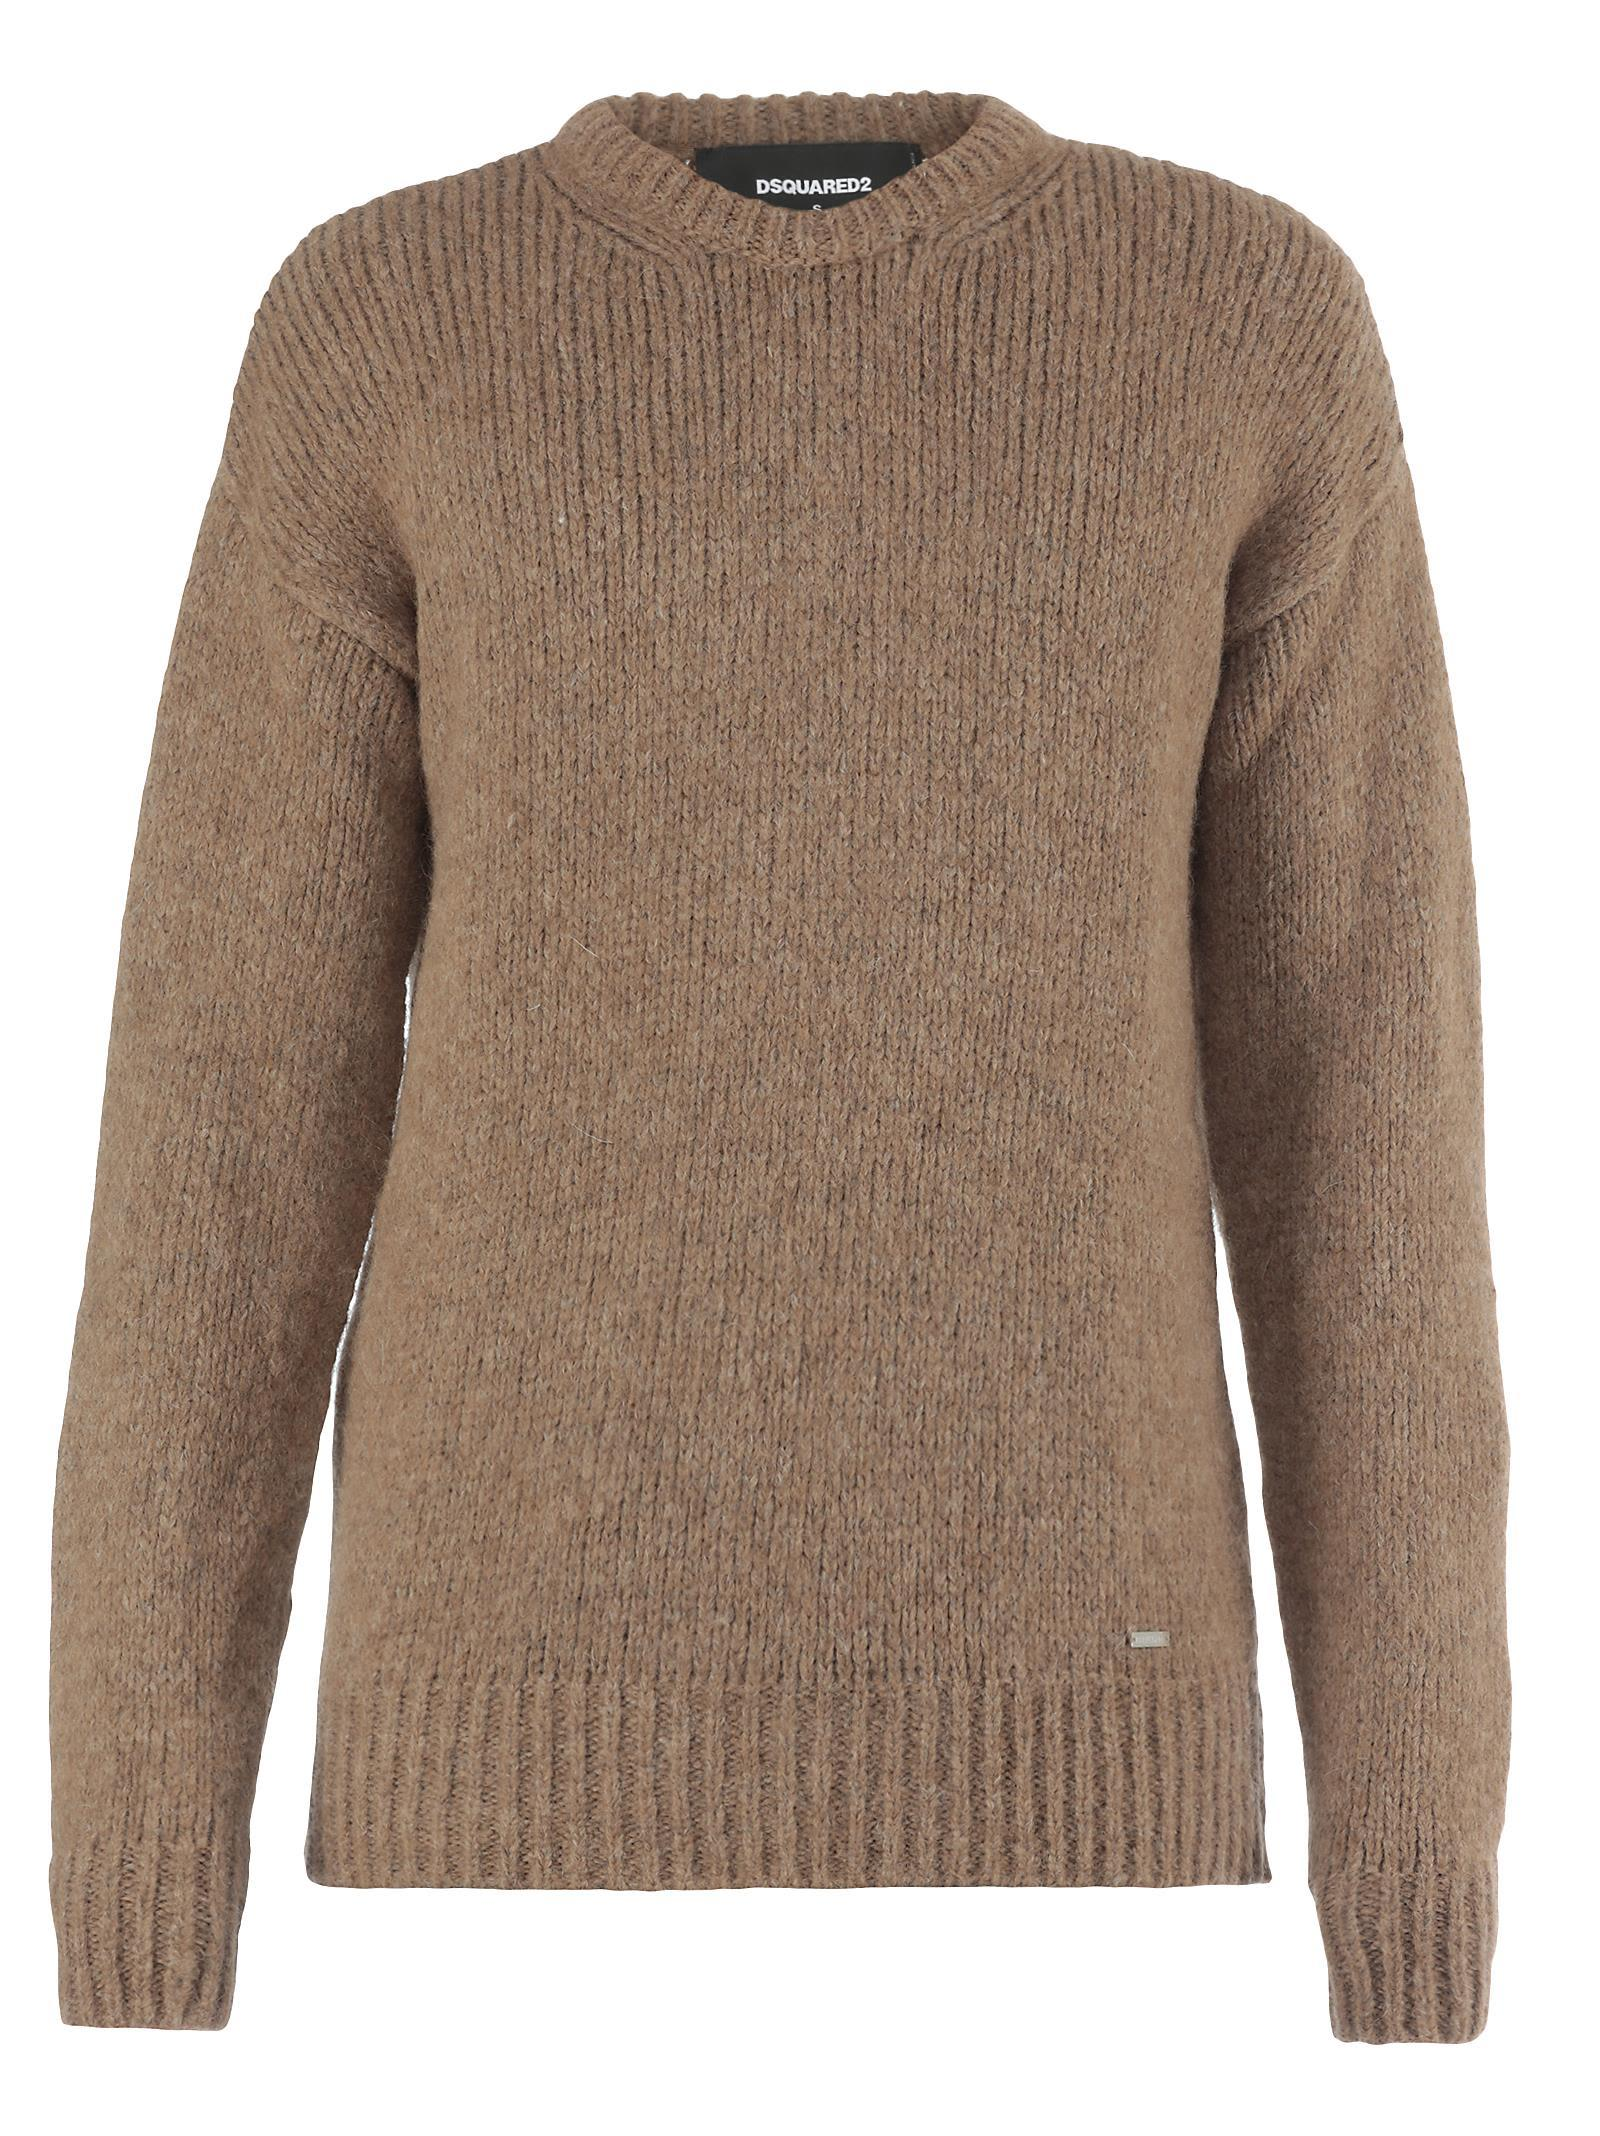 Dsquared2 Wool Sweater In Camel